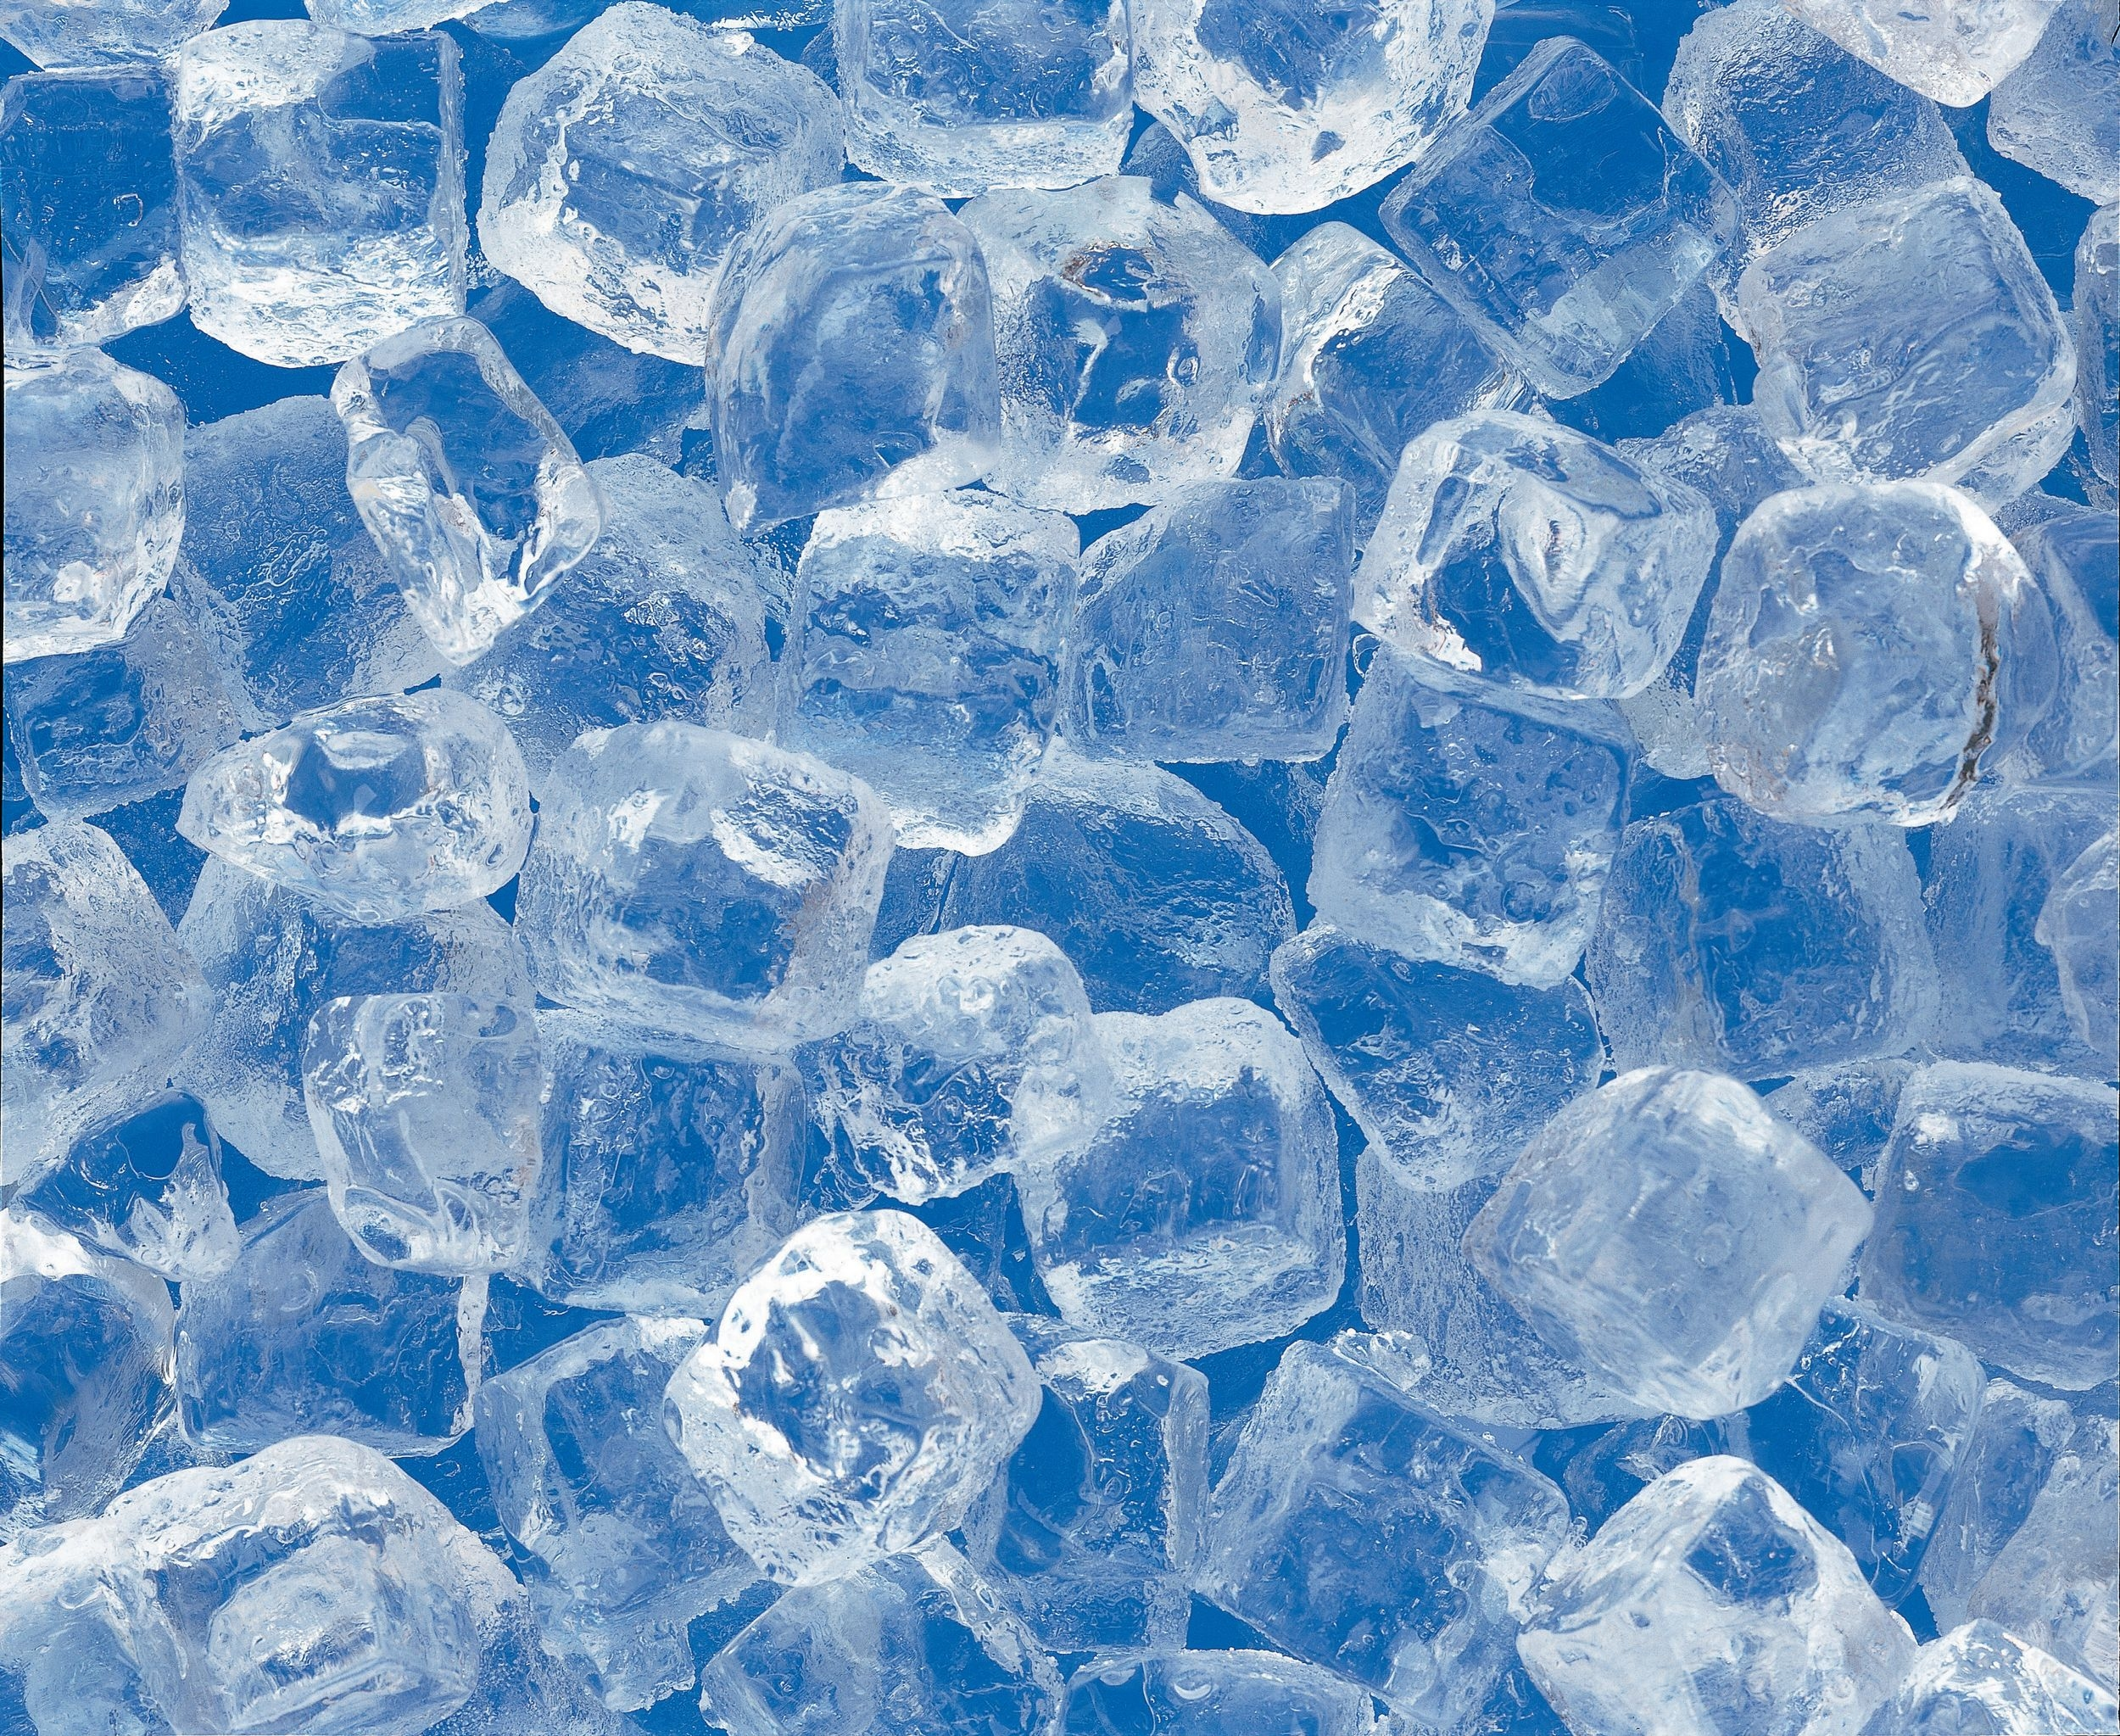 Keep Your Cool - How to Troubleshoot Automatic Ice Maker Problems